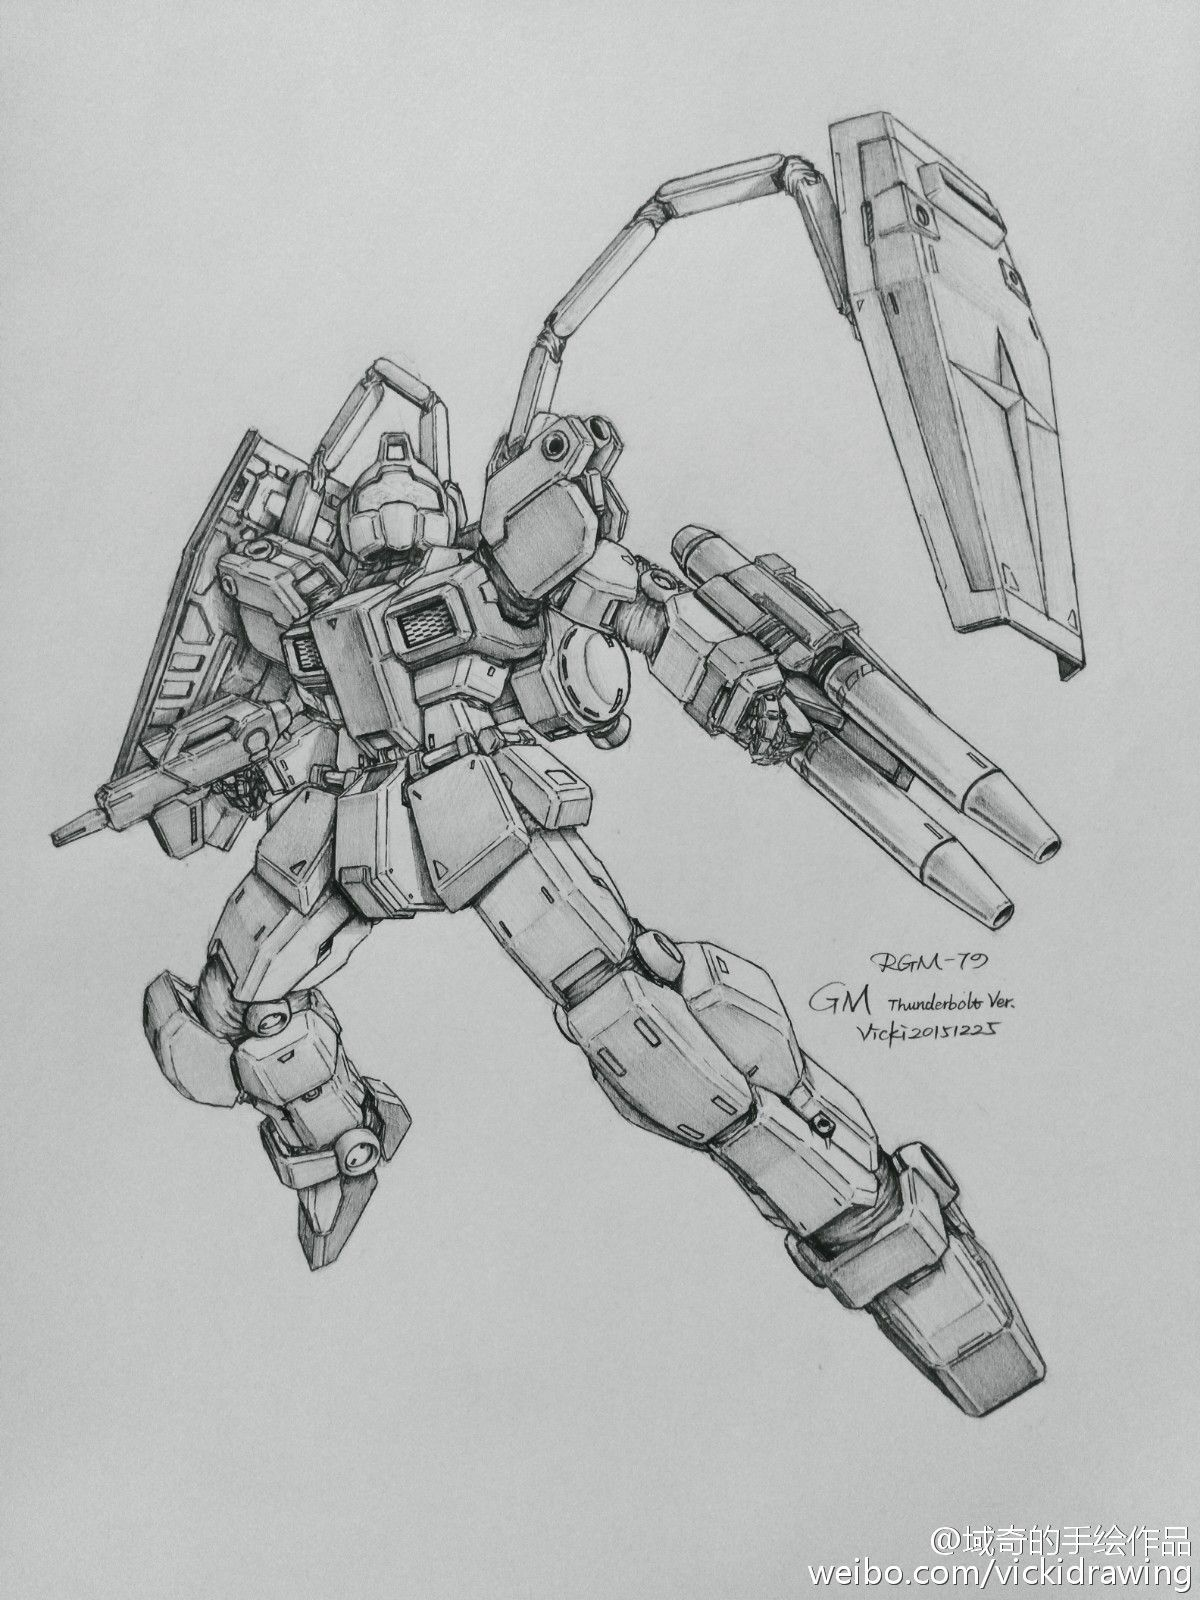 Awesome Gundam Sketches By Vickidrawing Updated 2 9 17